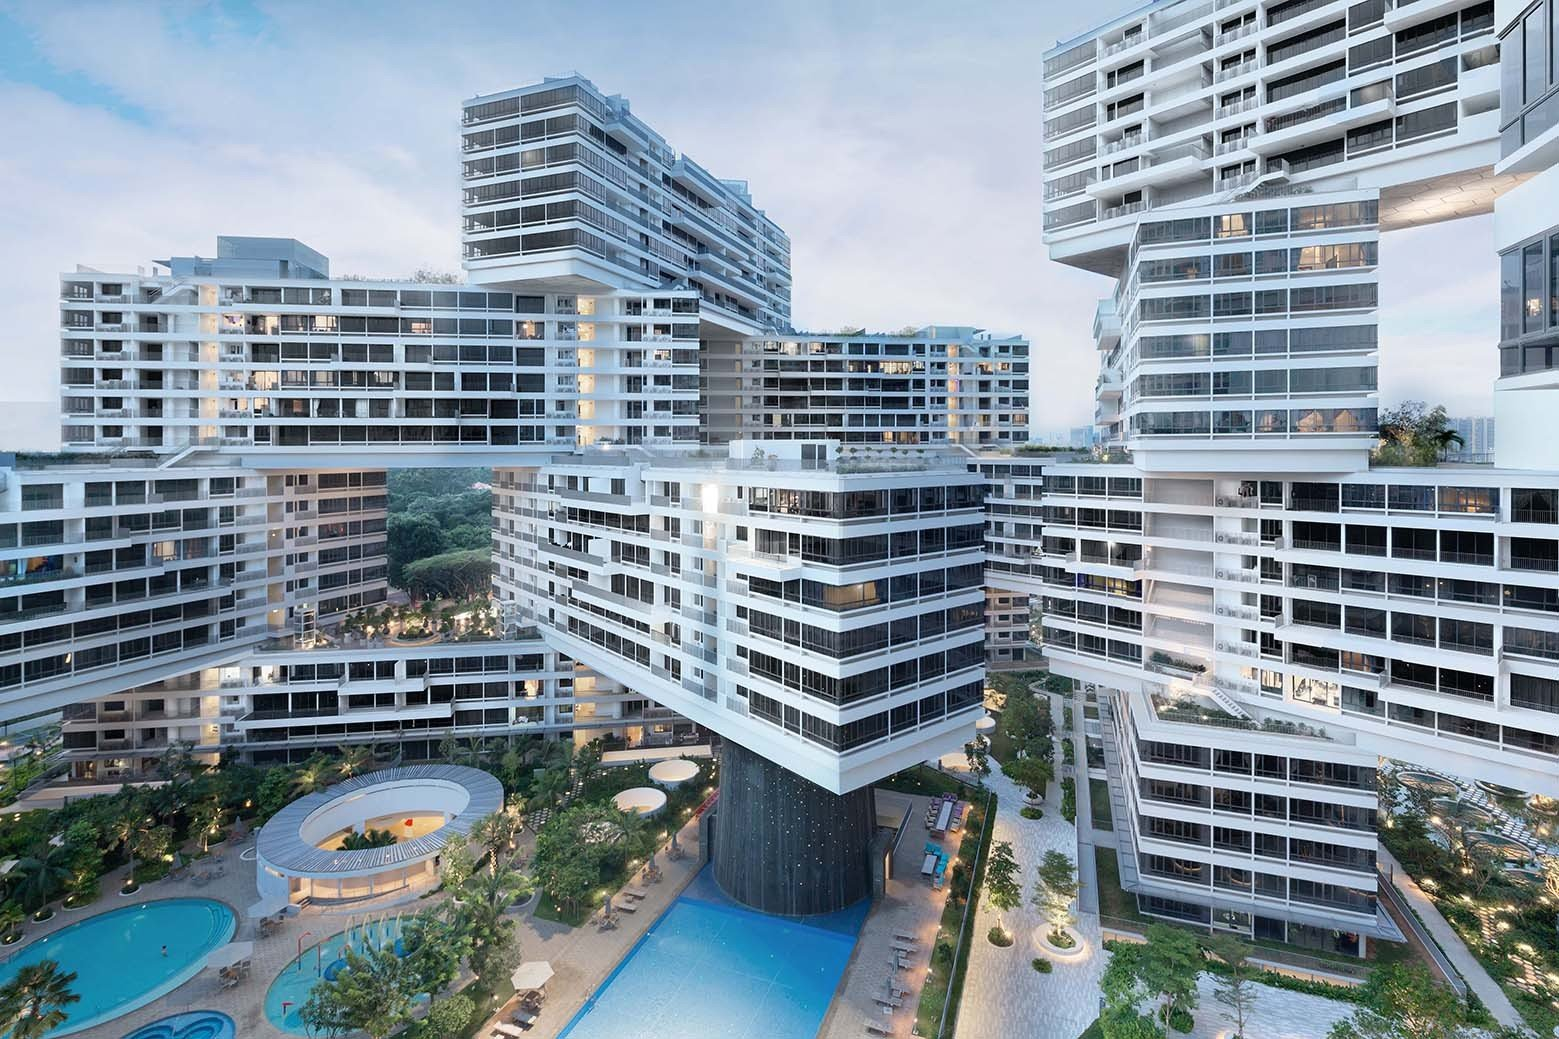 The Interlace is a 99-year leasehold development close to Alexandra Hospital and HortPark